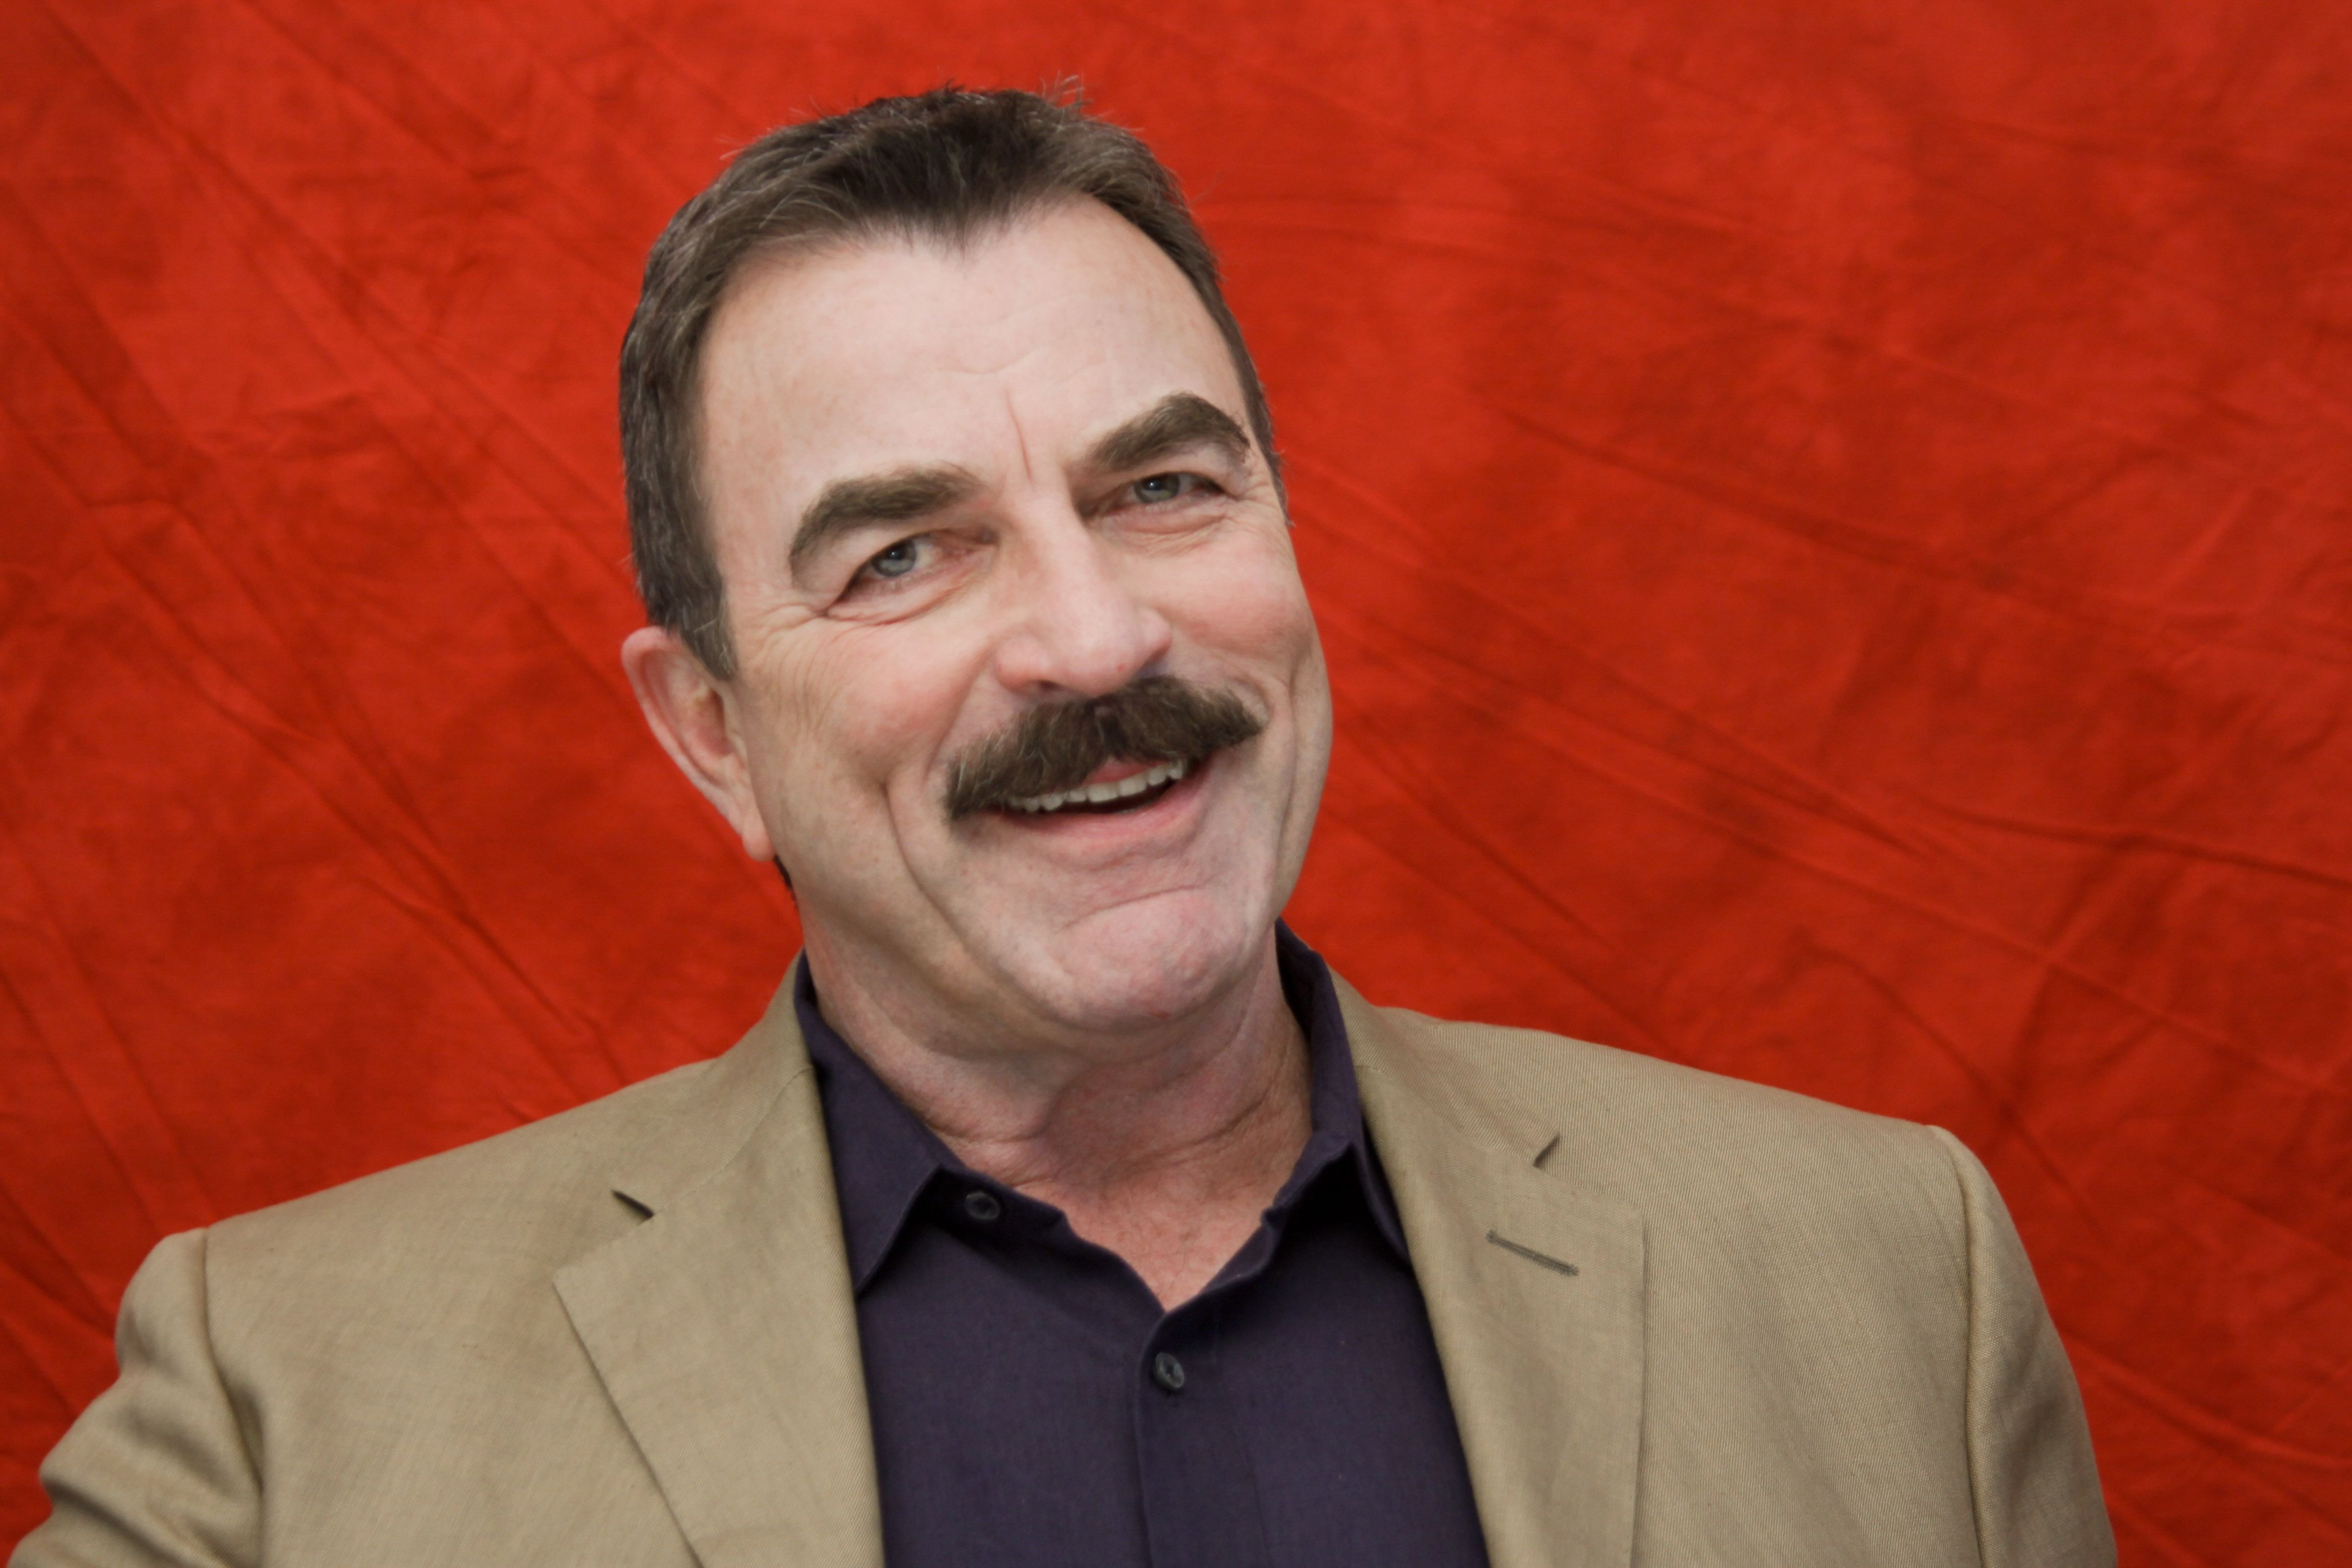 Tom Selleck poses for a photo at a portrait session in West Hollywood, California on August 16, 2010 | Photo: Getty Images